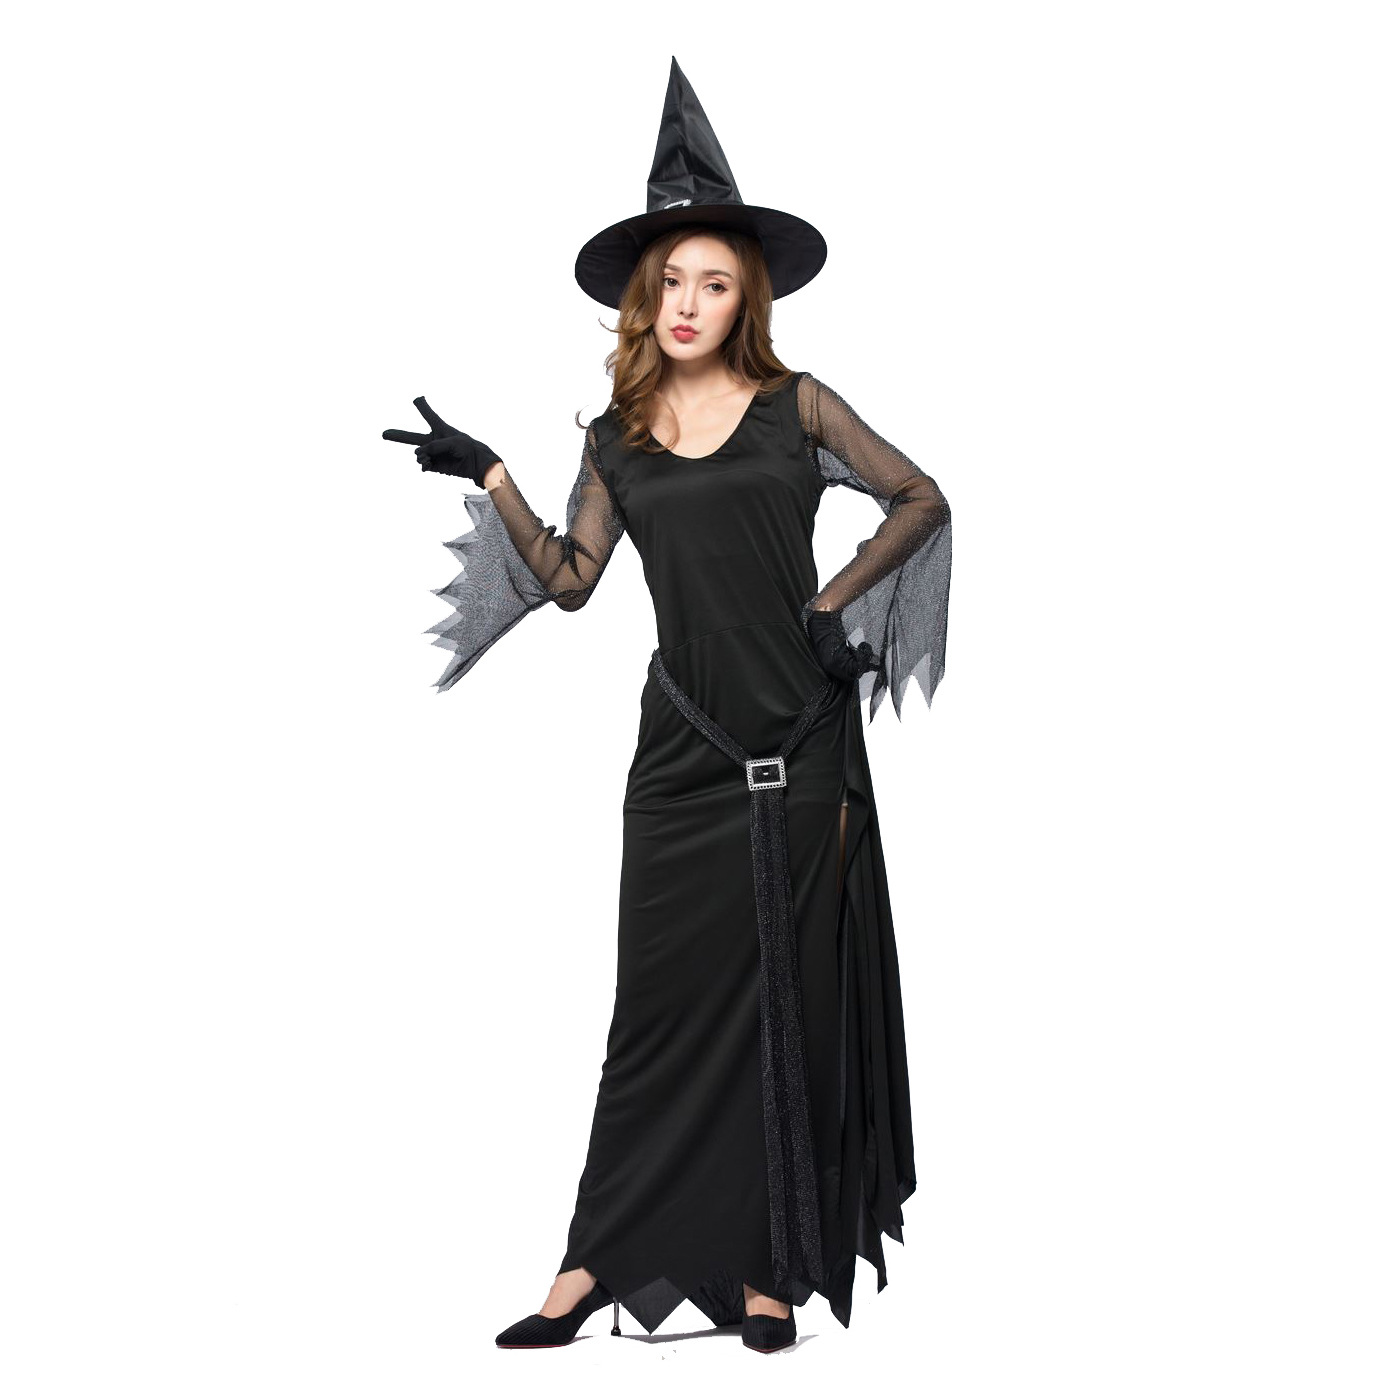 e9422dcf9e New 2019 Black Sexy Halloween Costume For Women Plus Size long dress evil  witch Costume Halloween Adulte Femme Disfraces Mujer